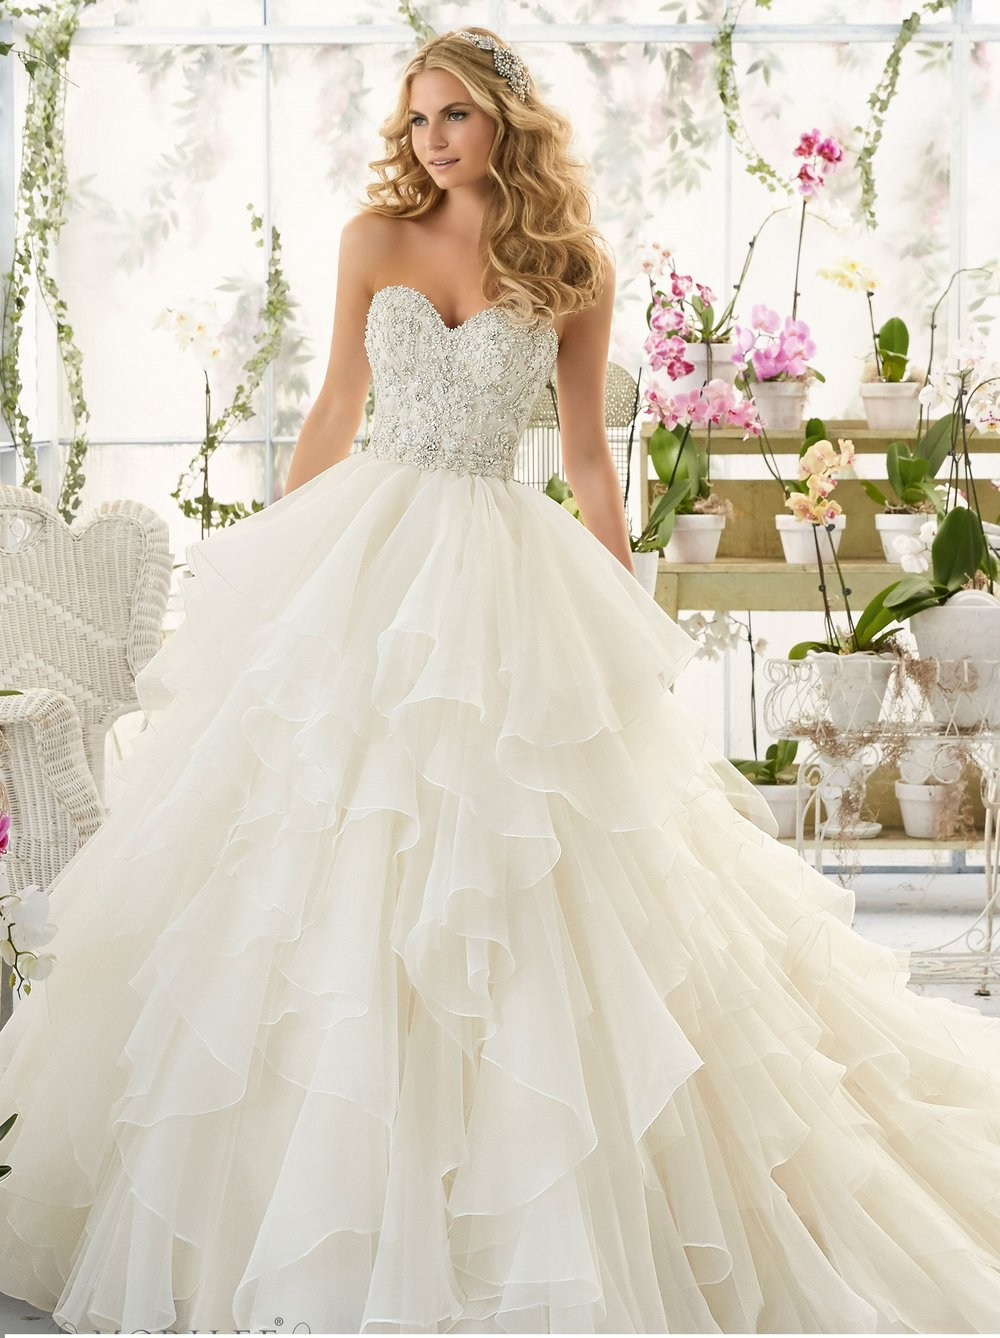 Crystal beaded bodice layered organza wedding dress